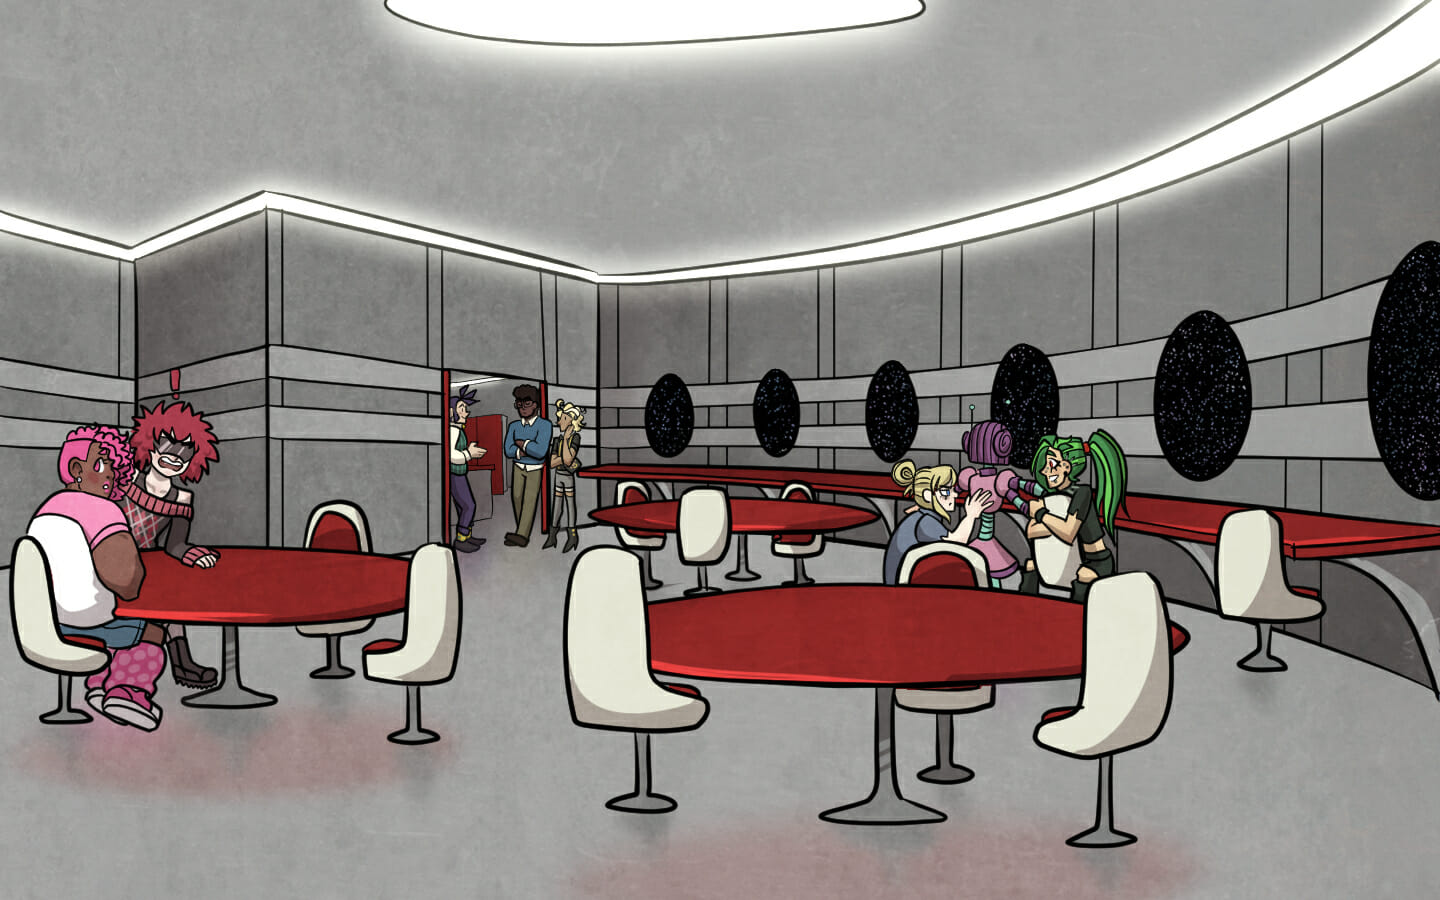 The cafeteria. Aoi and Vasundhara sit at one table, while Jurou, Tiffani, and Ping huddle near another. Nikola, Salvatore, and Siegfried stand in the kitchen.